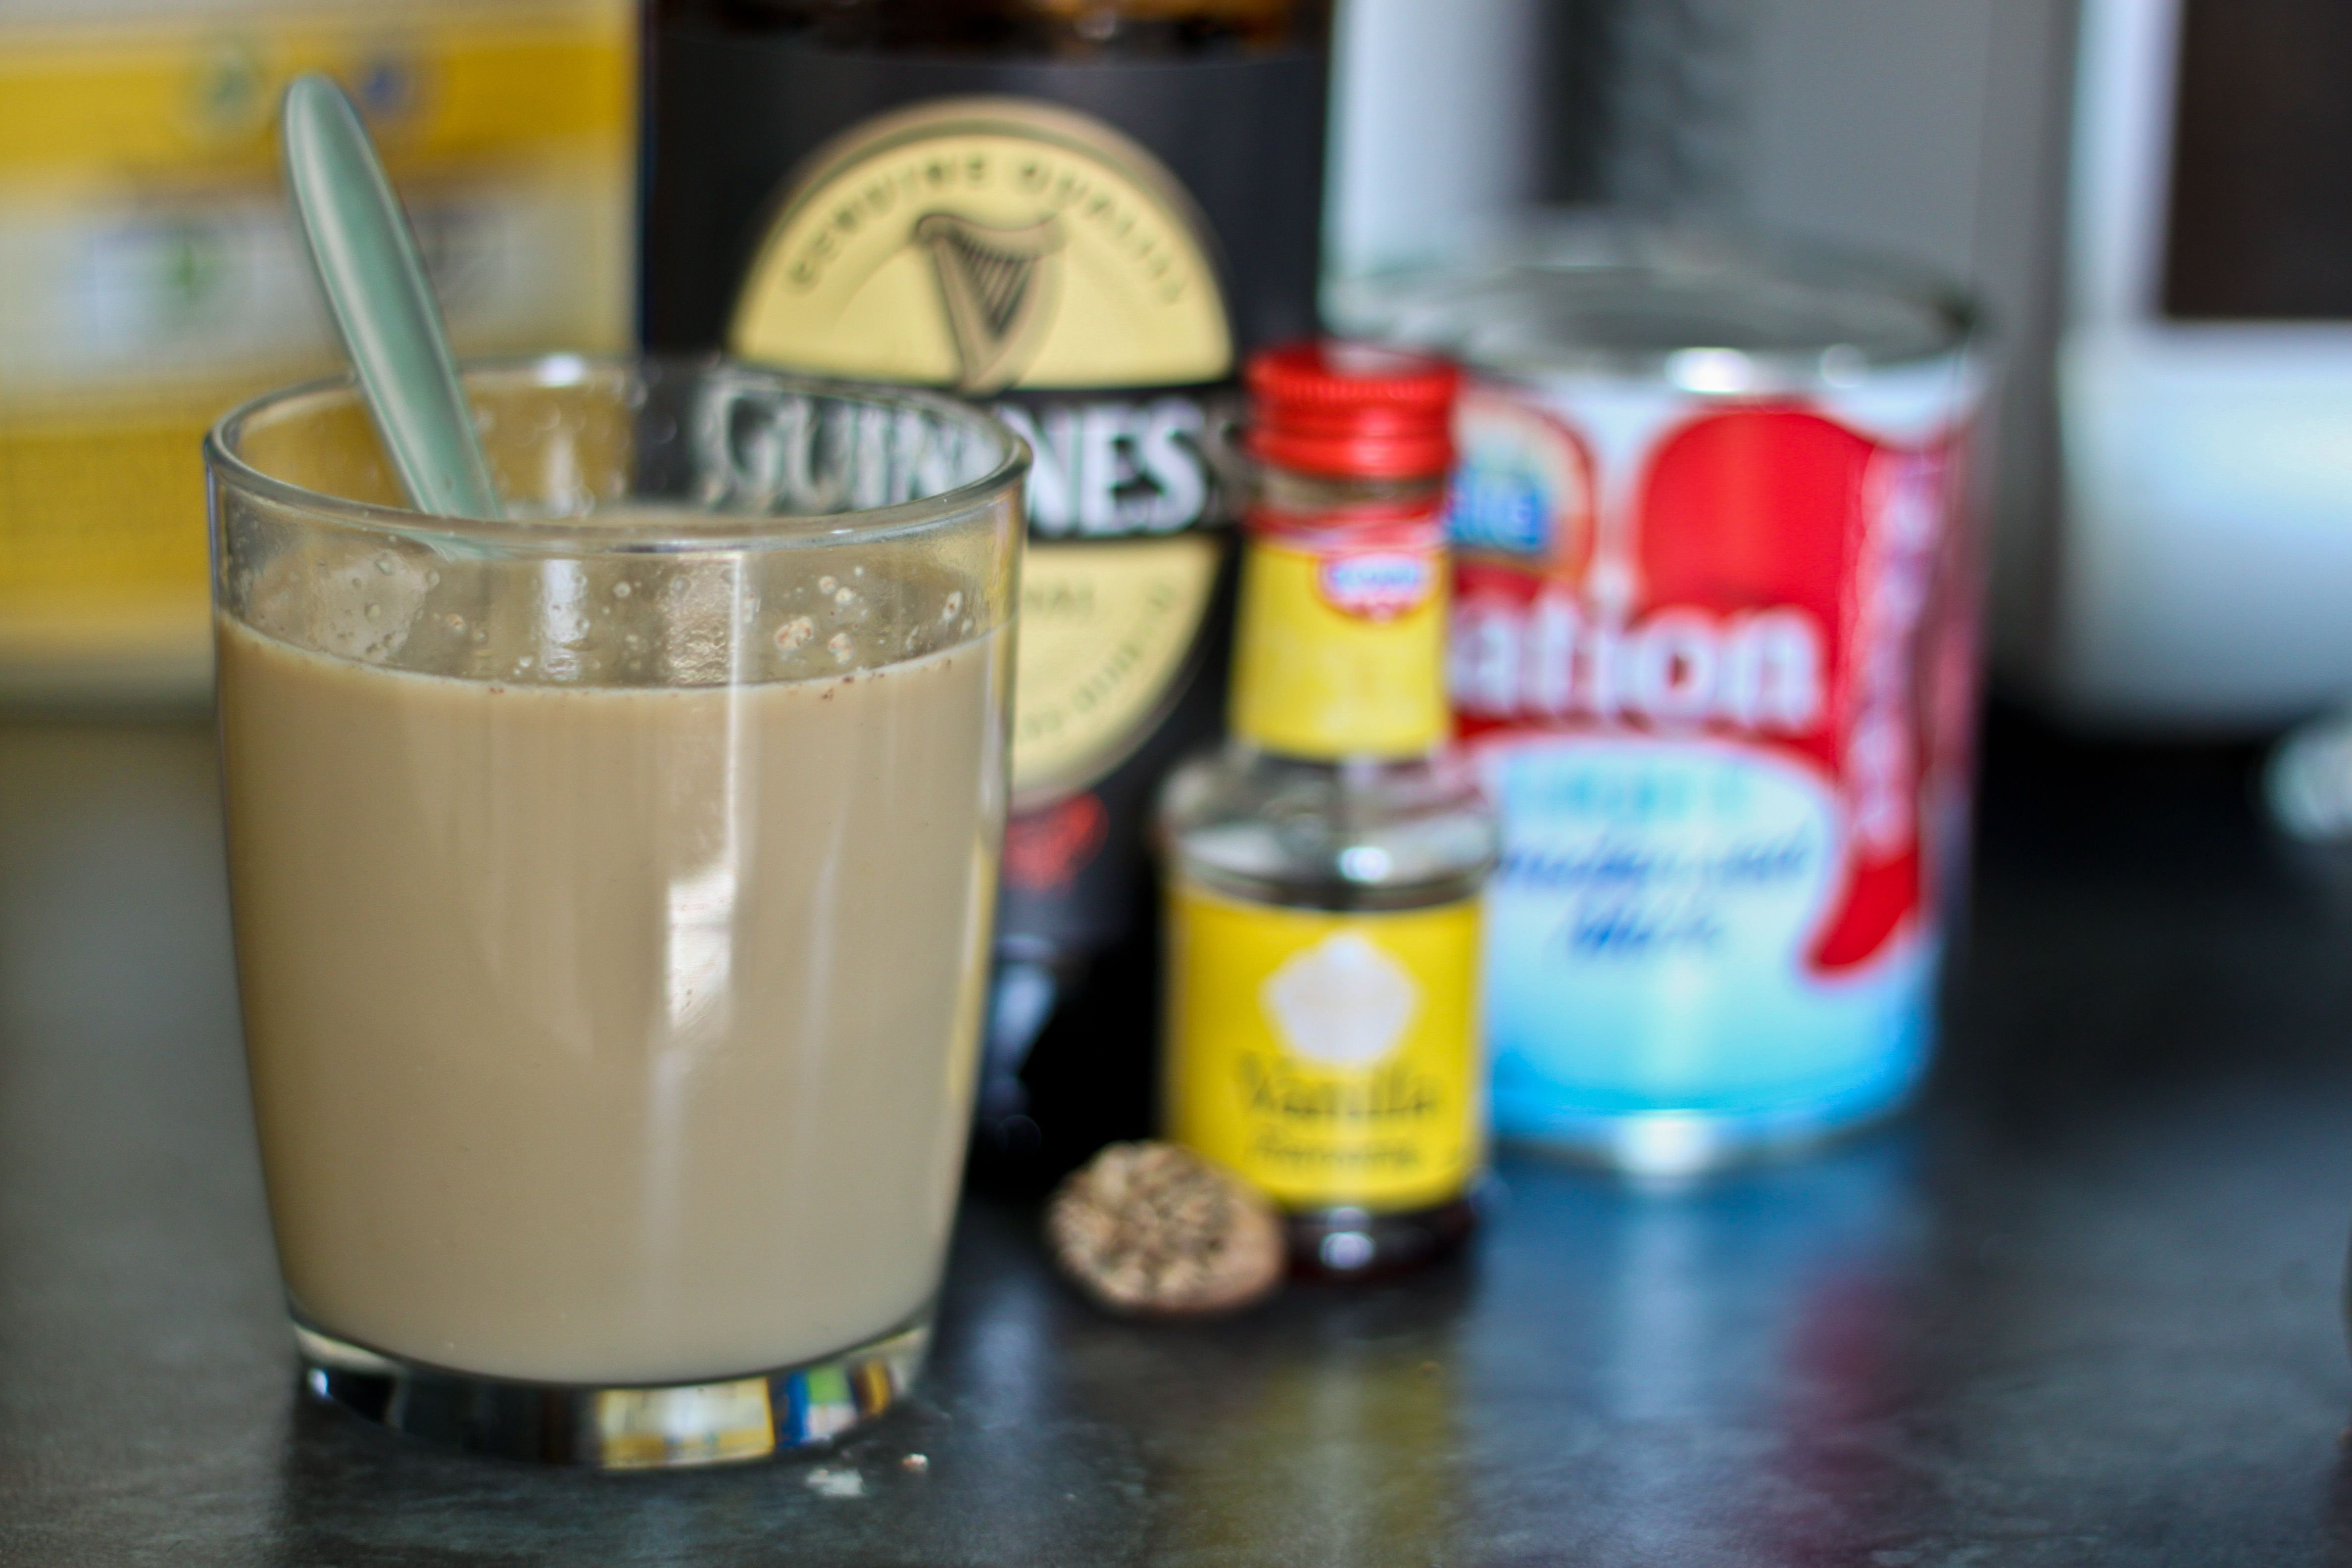 Guinness Punch Ingredients Guinness Condensed Milk Nutmeg Vanilla Essence A Raw Egg Says My Mother Caribbean Recipes Xmas Menu Jamaican Recipes